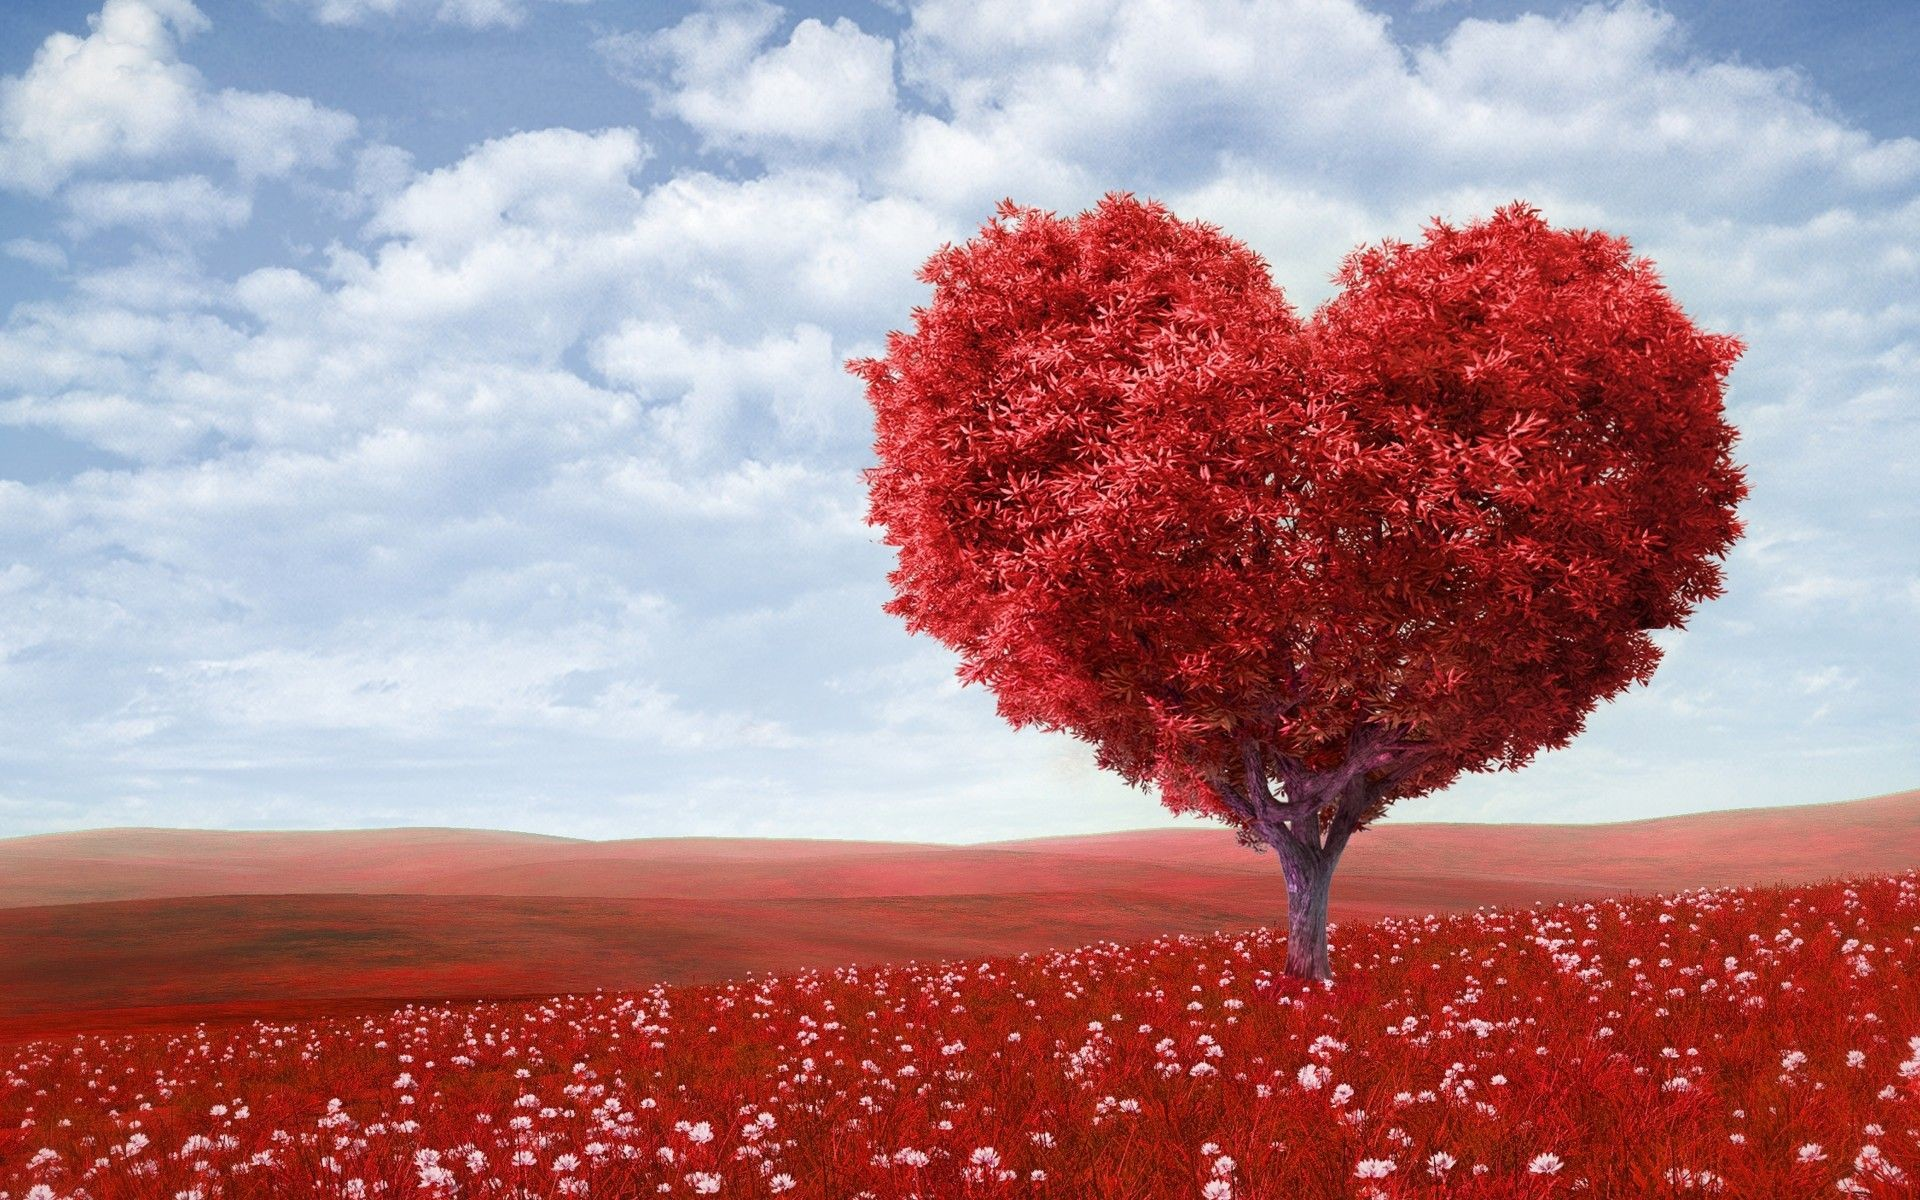 Beautiful Wallpaper About Love : Beautiful Love Backgrounds (58+ images)